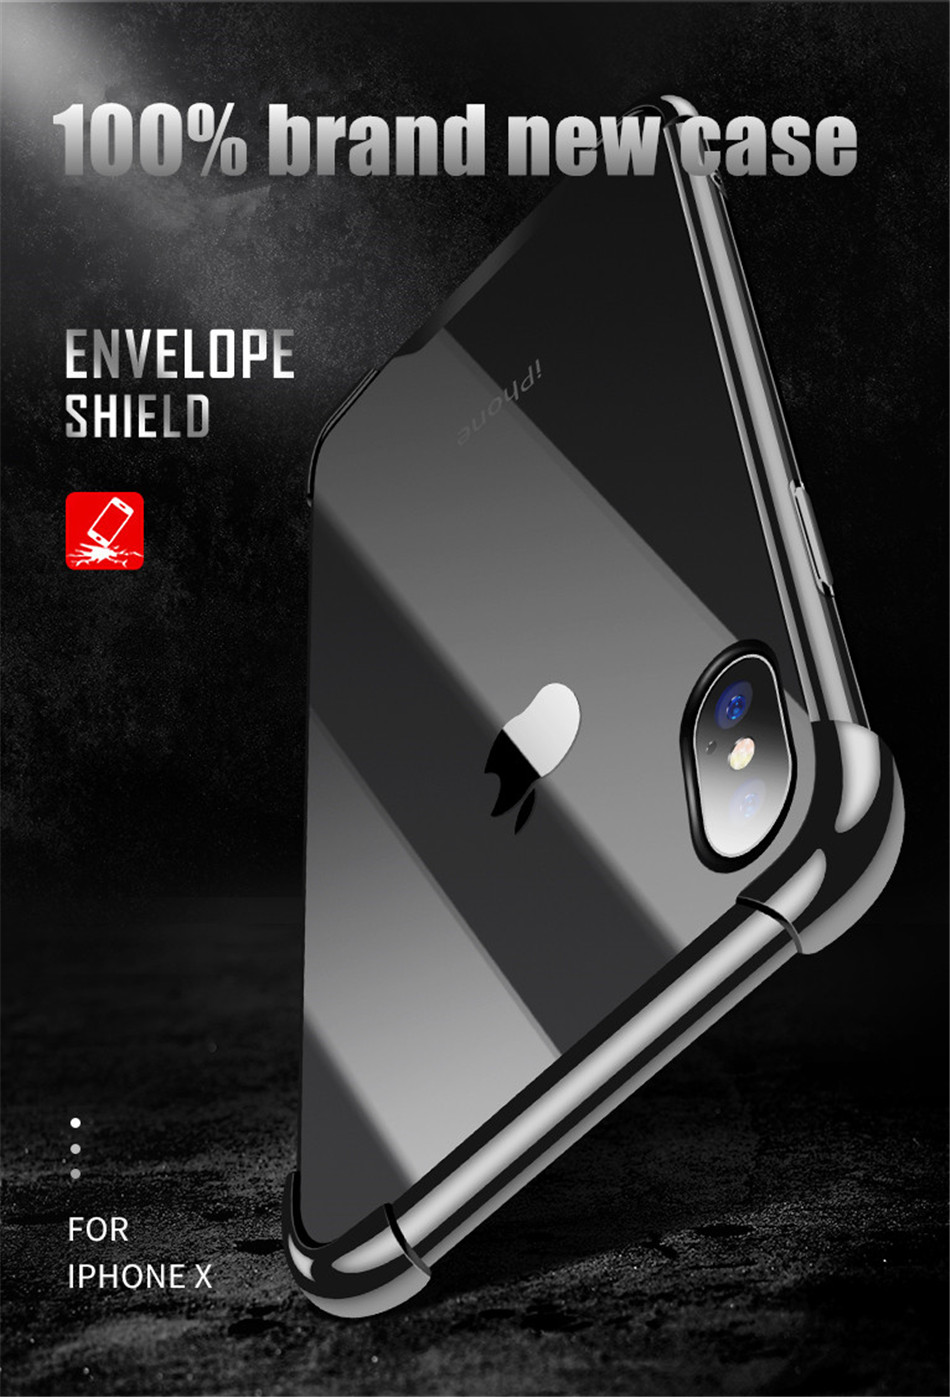 H54f2c1d20a414e51b45e05177831cbbe5 - USLION Shockproof Armor Clear Case For iPhone 11 Pro Max XS Max XR X 8 7 6 6s Plus 5 5s SE Transparent Phone Cases Airbag Cover